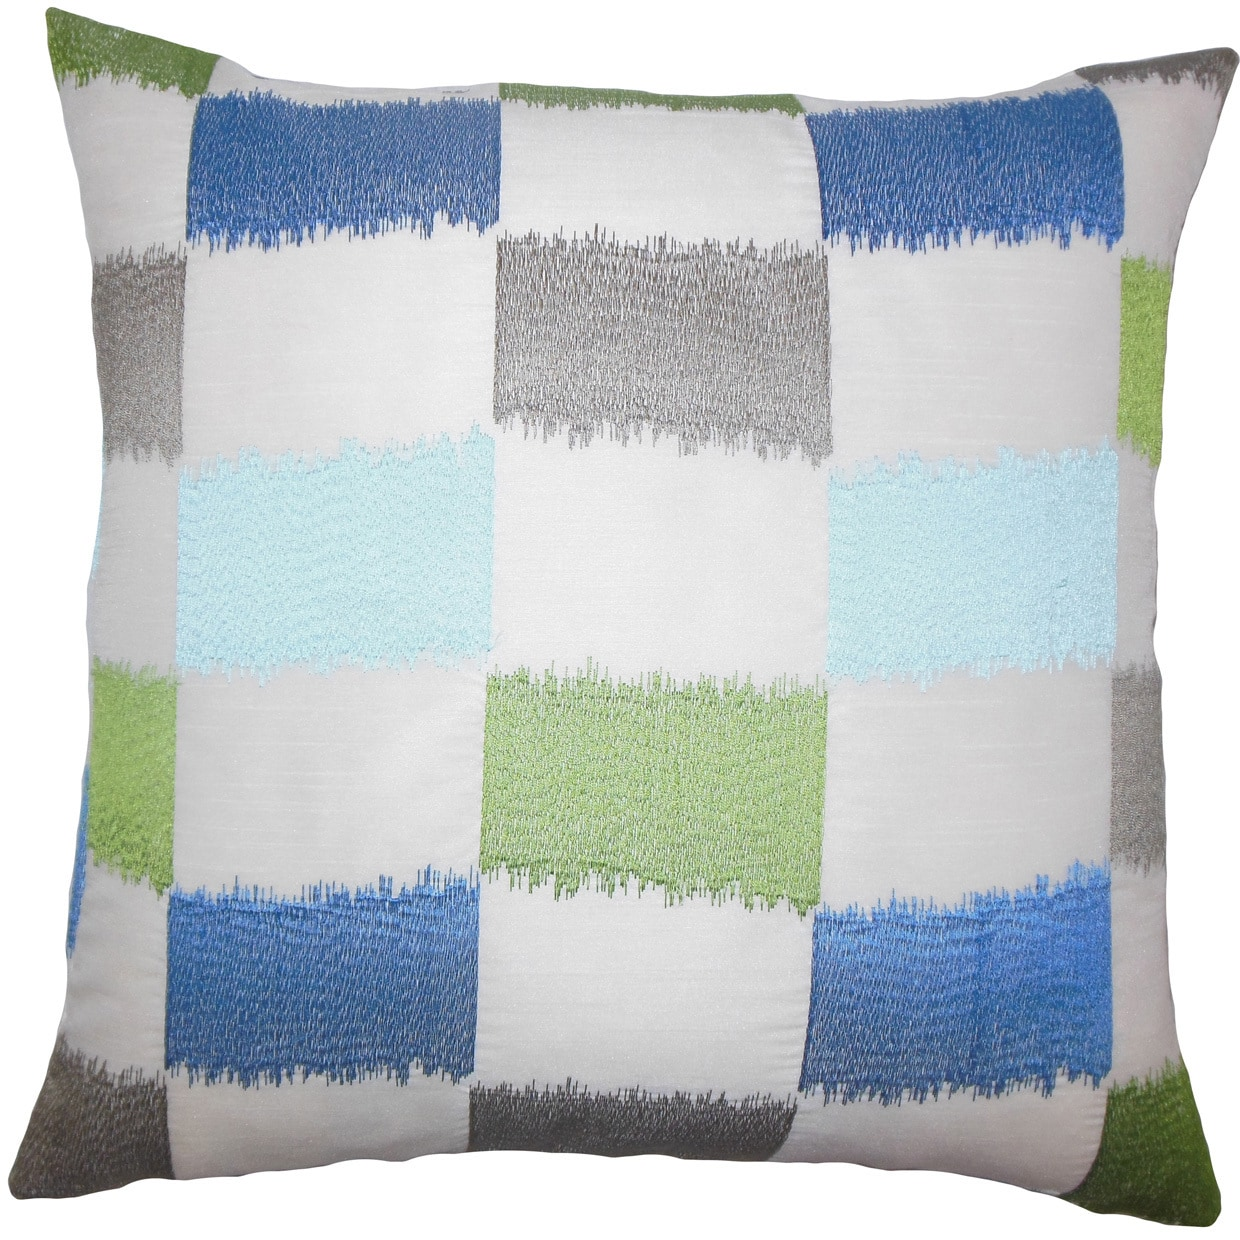 The Pillow Collection Ruchel Geometric 24-inch Down Feather Throw Pillow - Blue Green